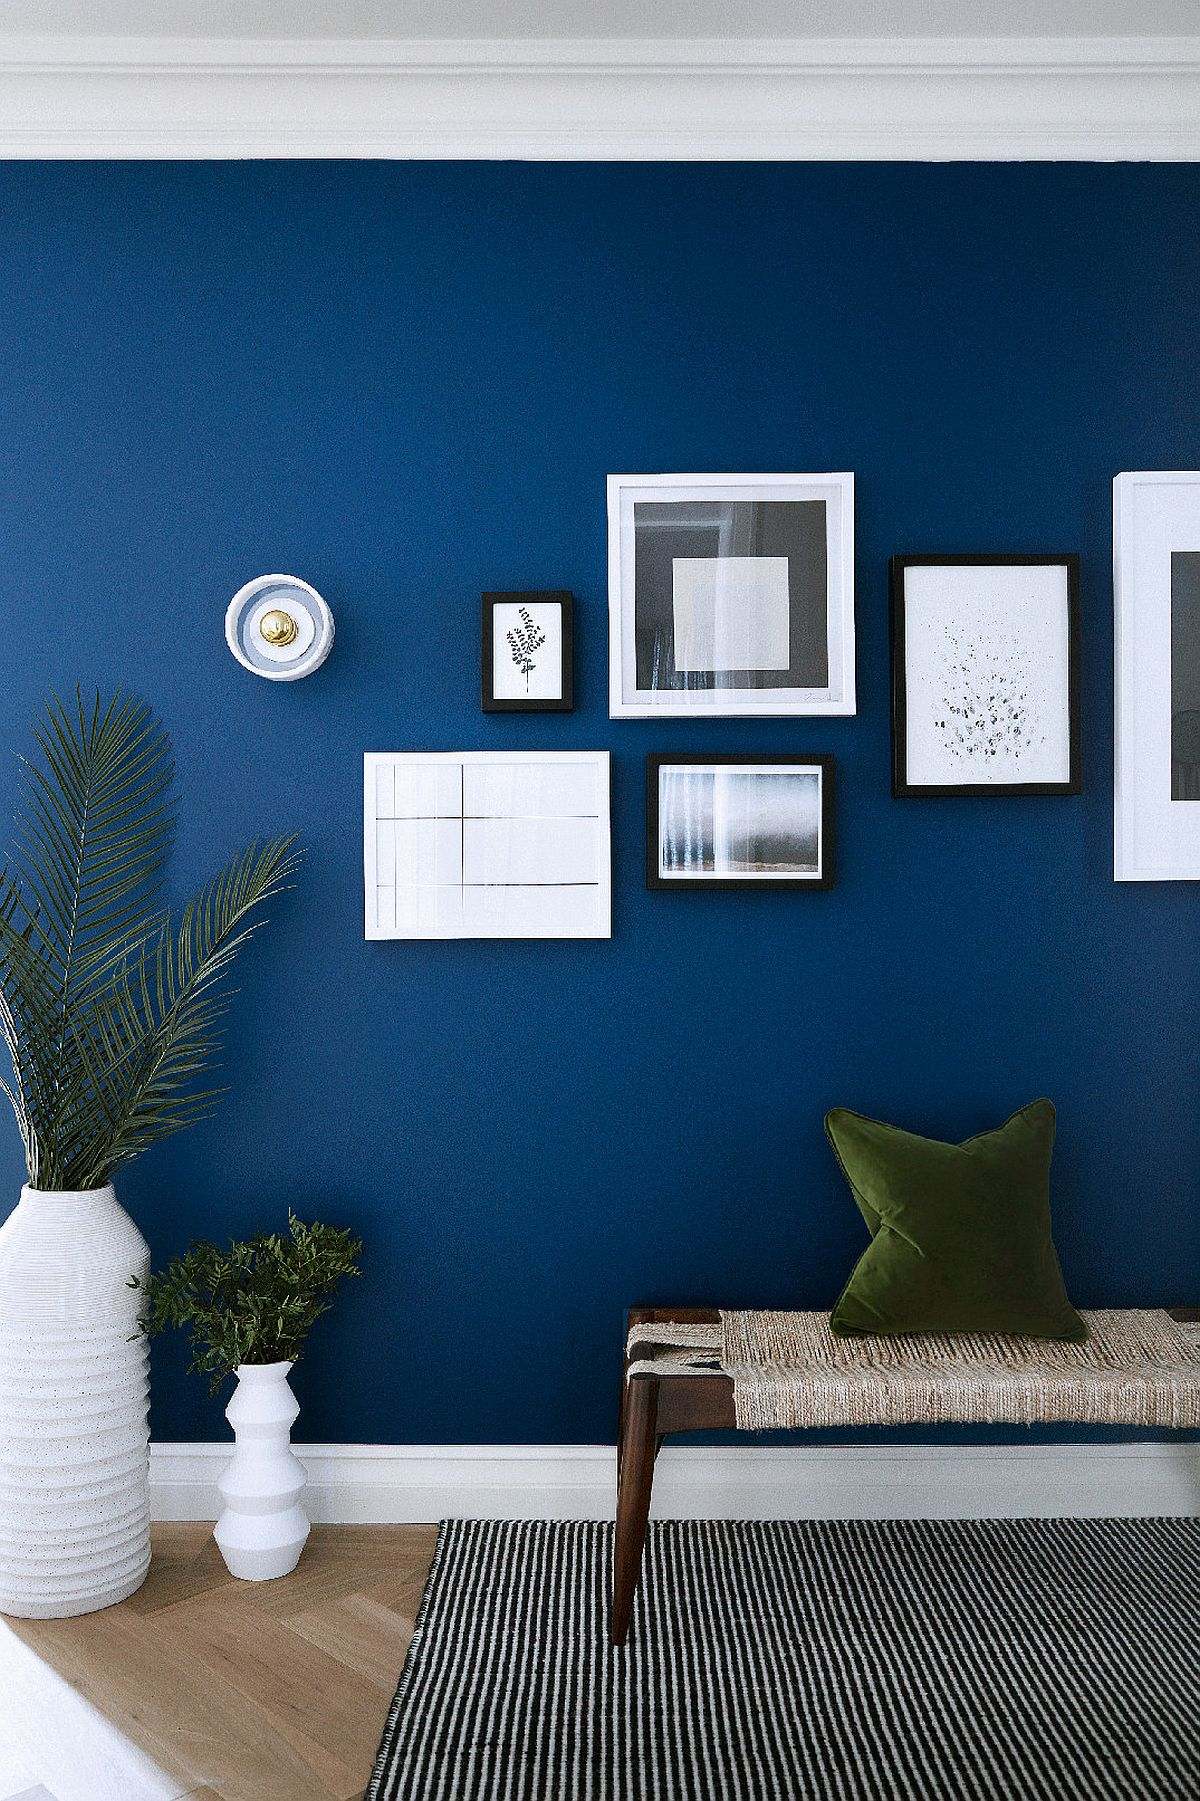 Dazzling-blue-with-white-and-greens-is-the-perfect-look-for-the-winter-living-space-47284